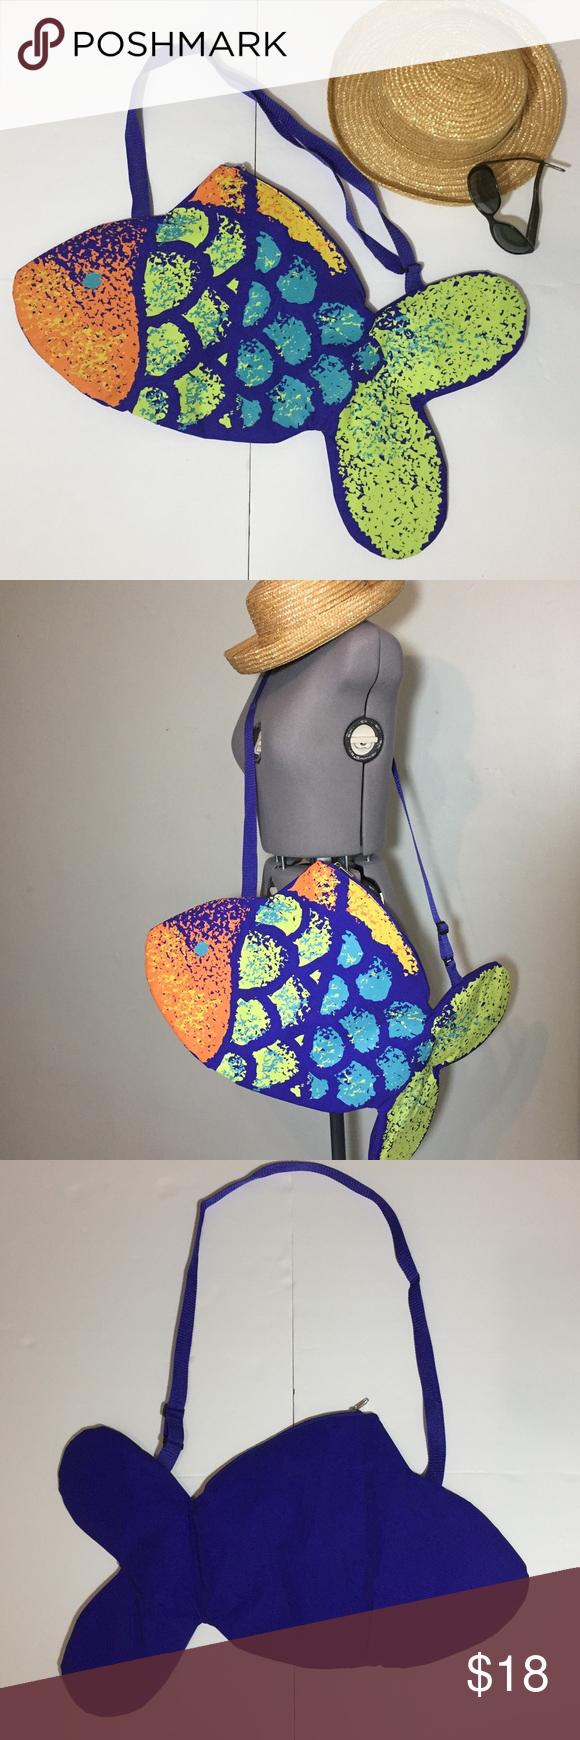 Just For The Beach Fish Bag Beach Pool Or Just For Fun Fish Bags Beach Pool And Bag